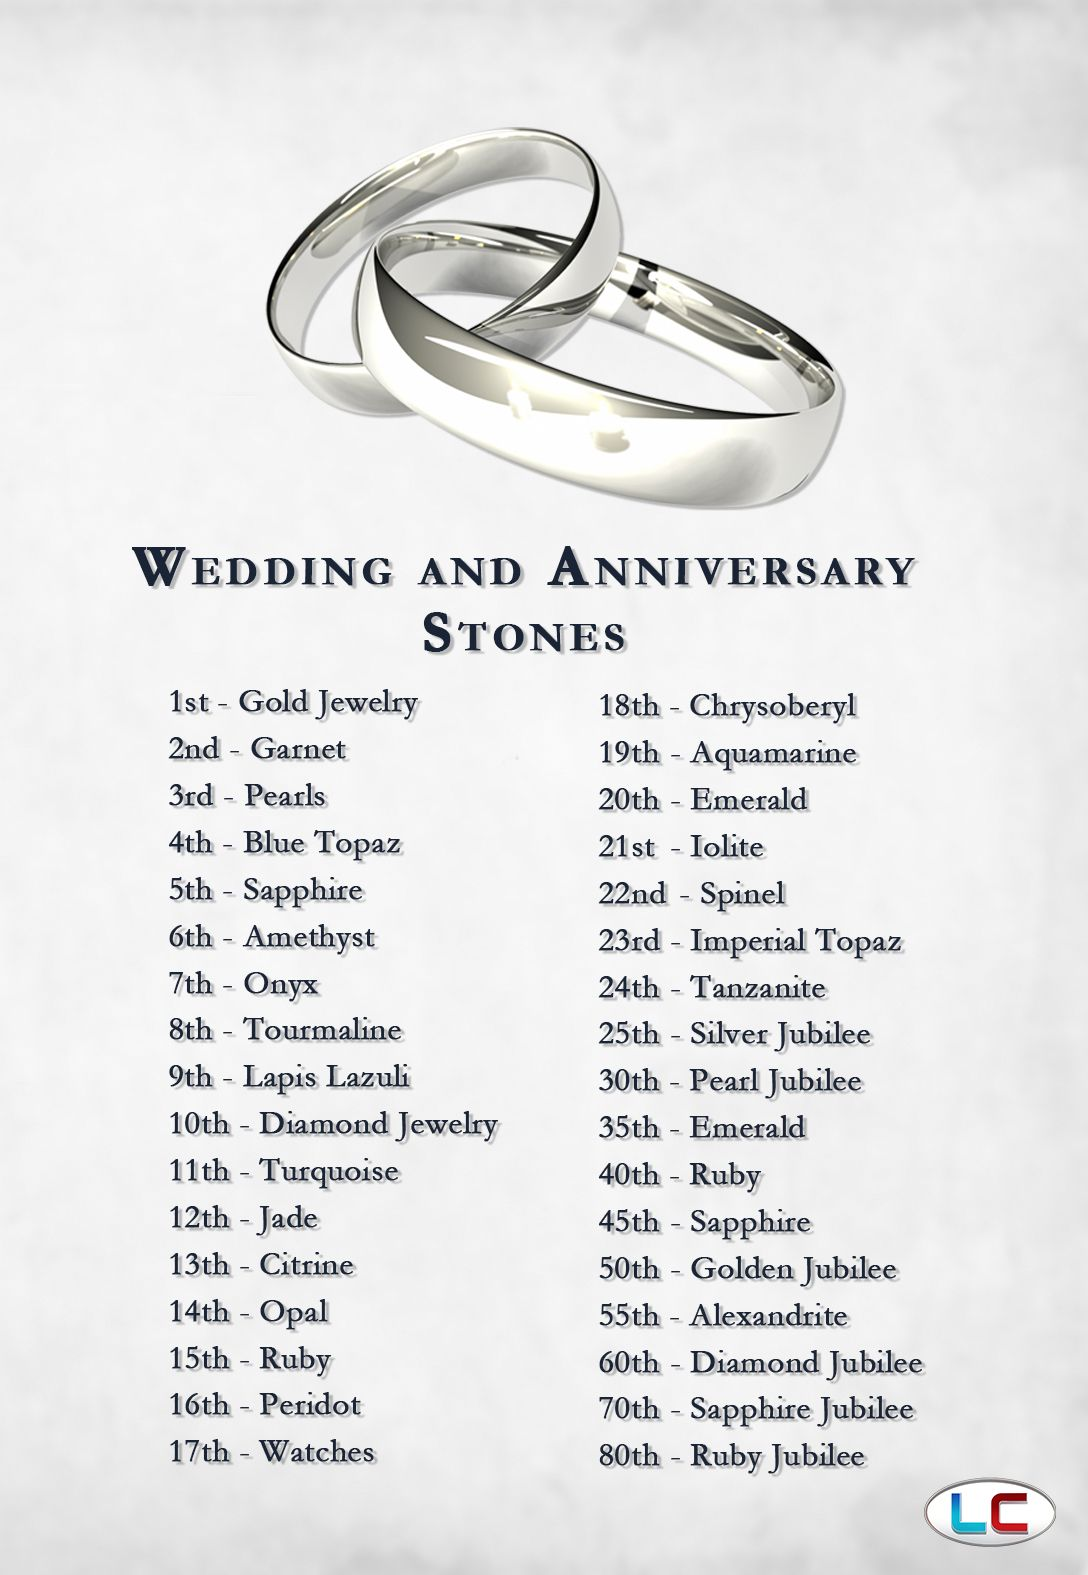 Wedding and anniversary gemstones 10th anniversary is What is the 4 year wedding anniversary gift